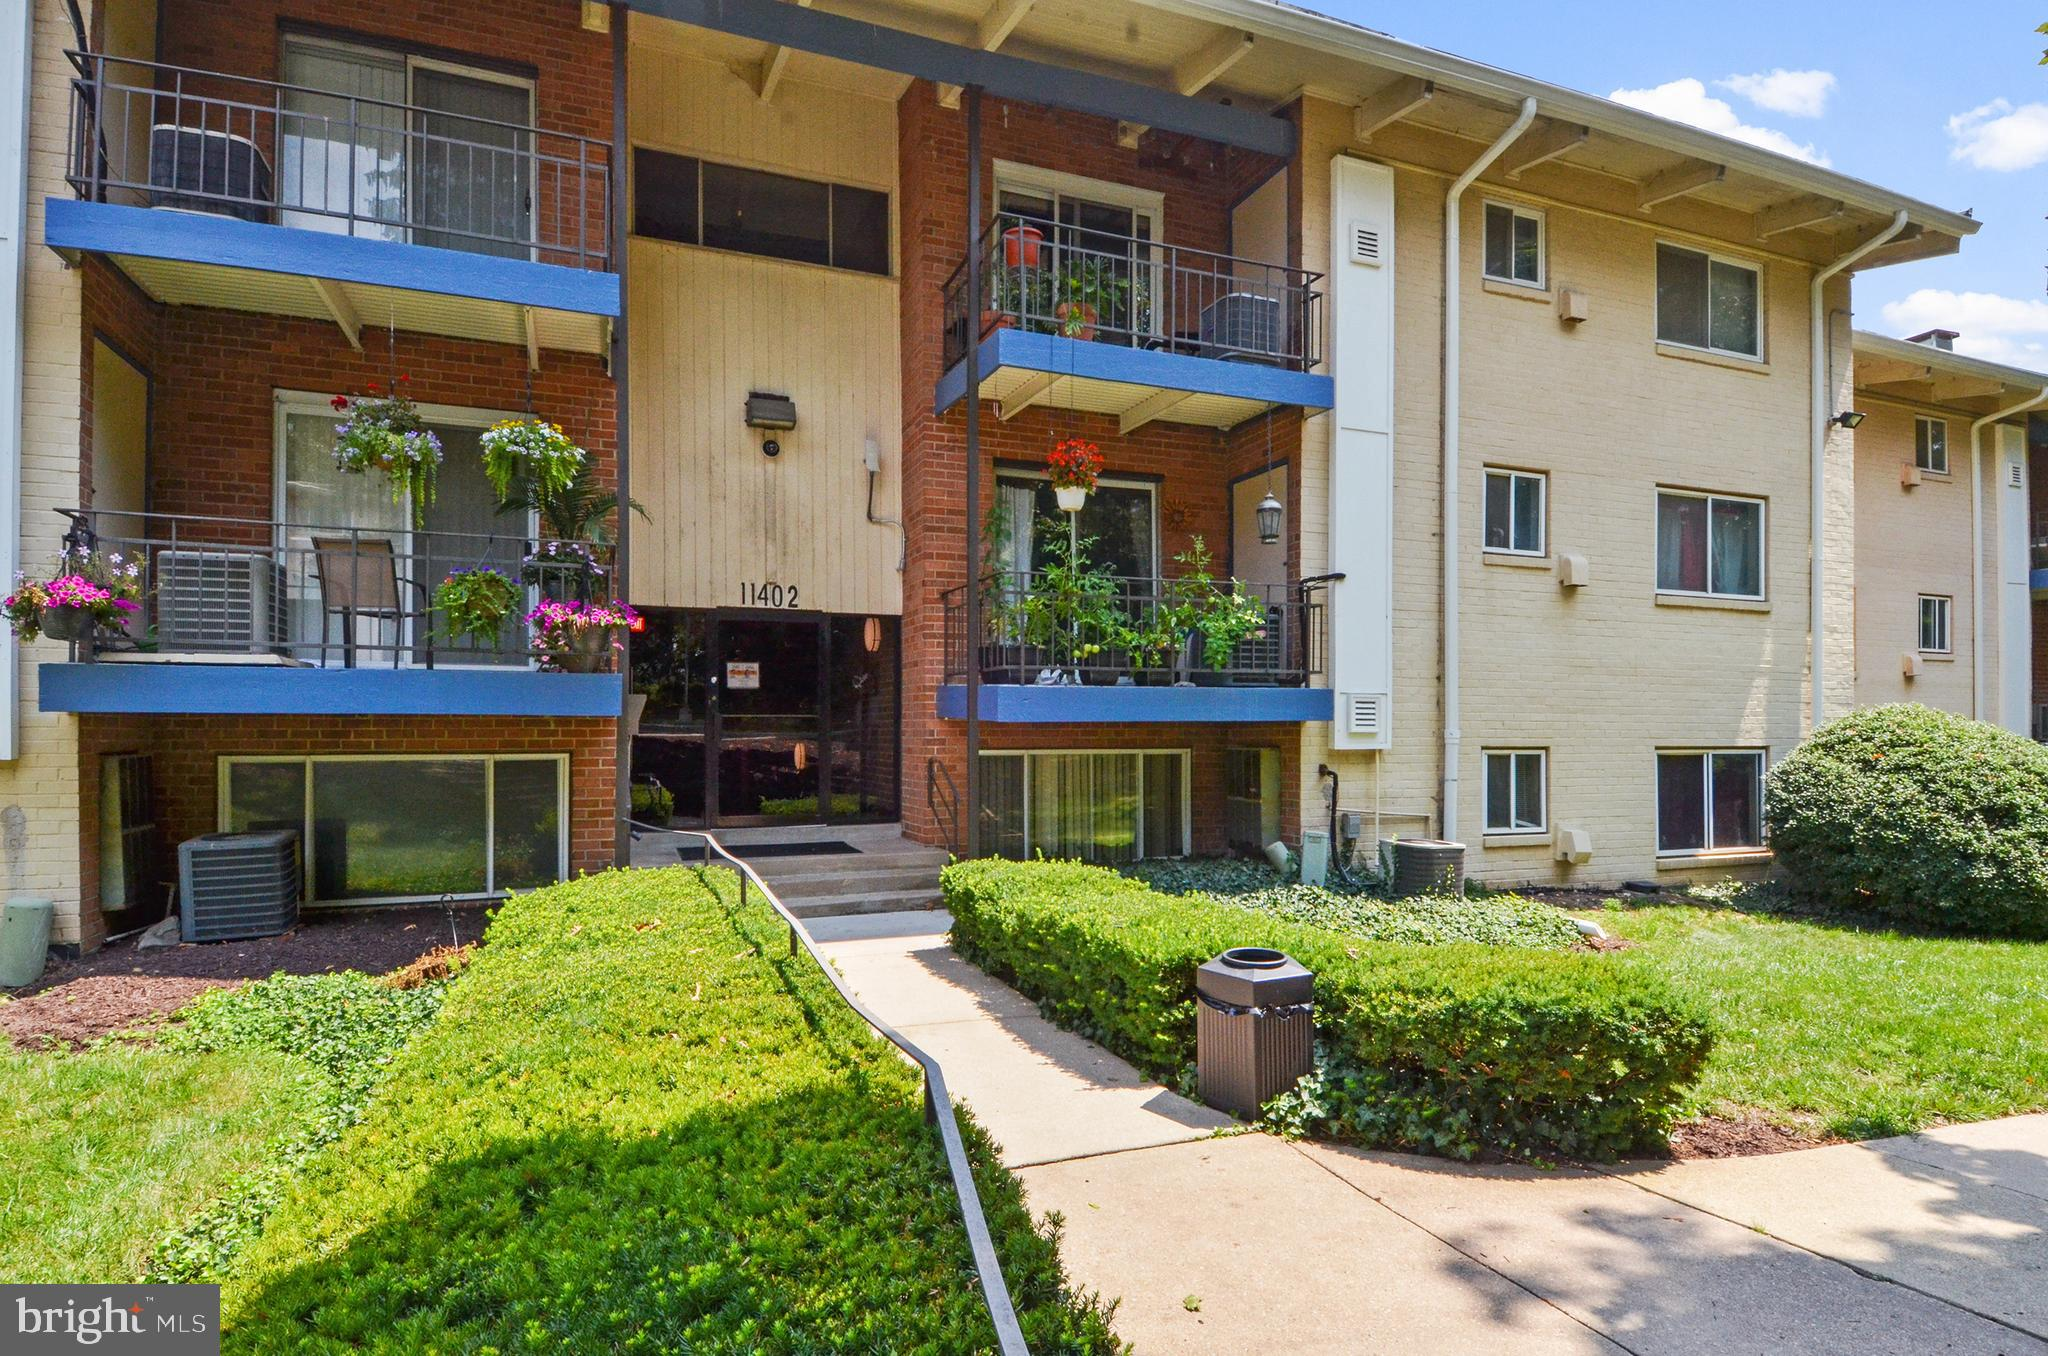 Welcome Home, Enjoy this first level 1 bedroom and 1 bathroom condo! The condo features the benefits